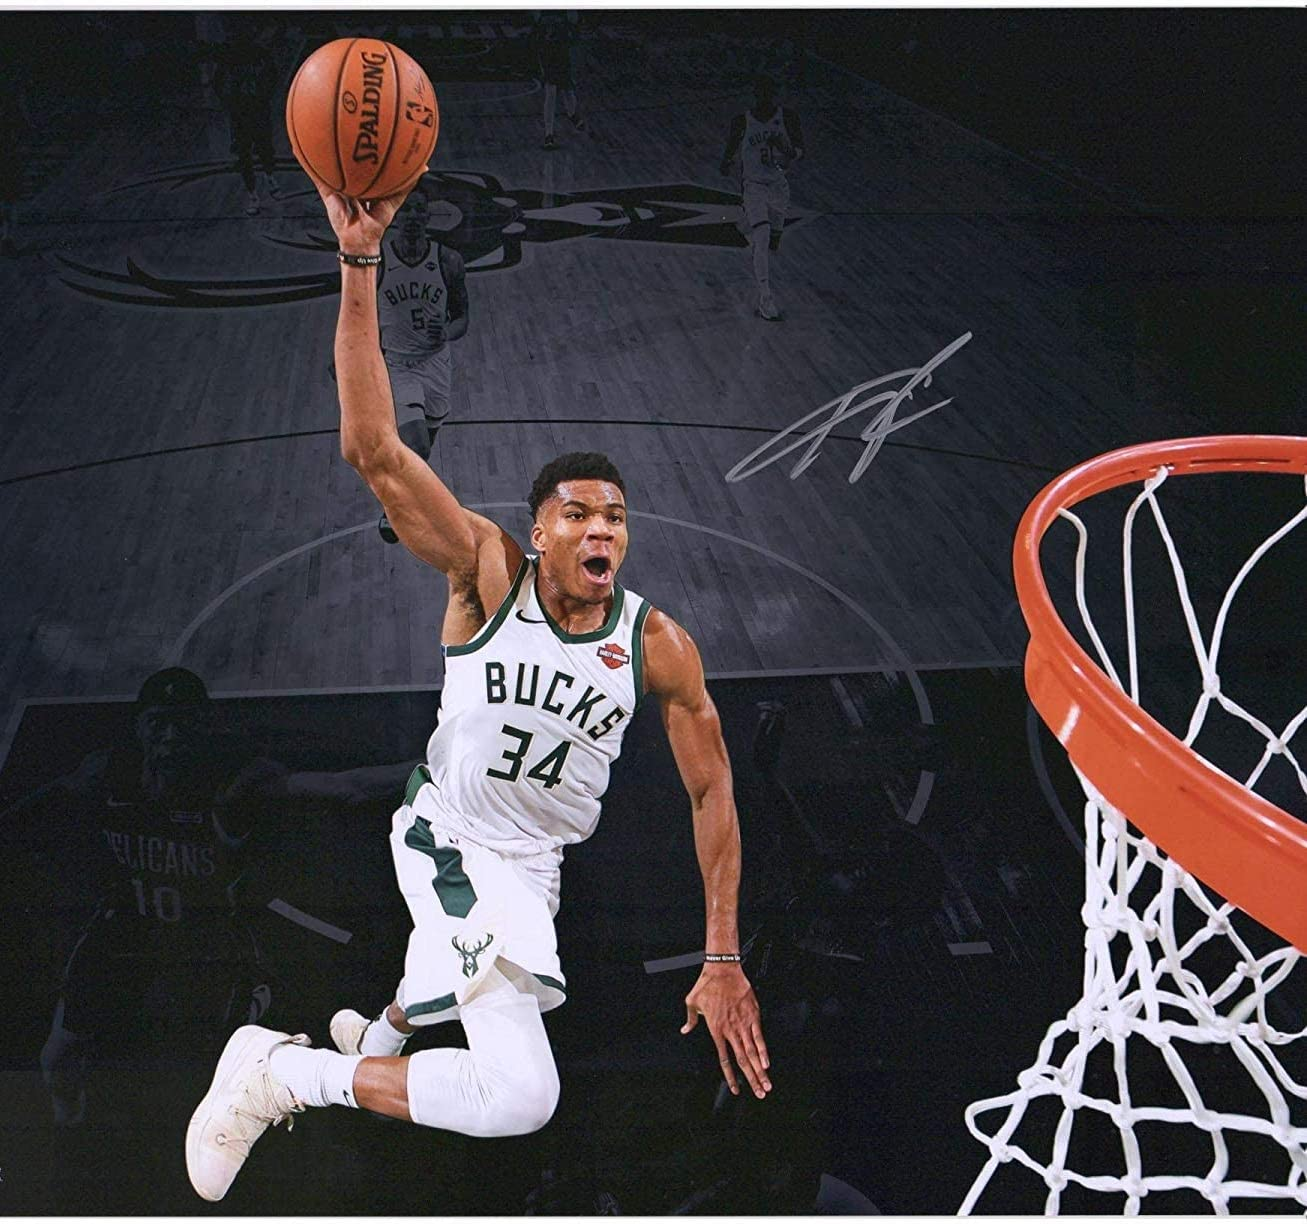 Giannis Antetokounmpo Poster Print, Wall Art, Sport Artwork, Posters for Wall, Sport Game Room Poster, Photo Canvas Art, No Frame Poster, Original Art Poster Gift Size 24 x 32 Inches